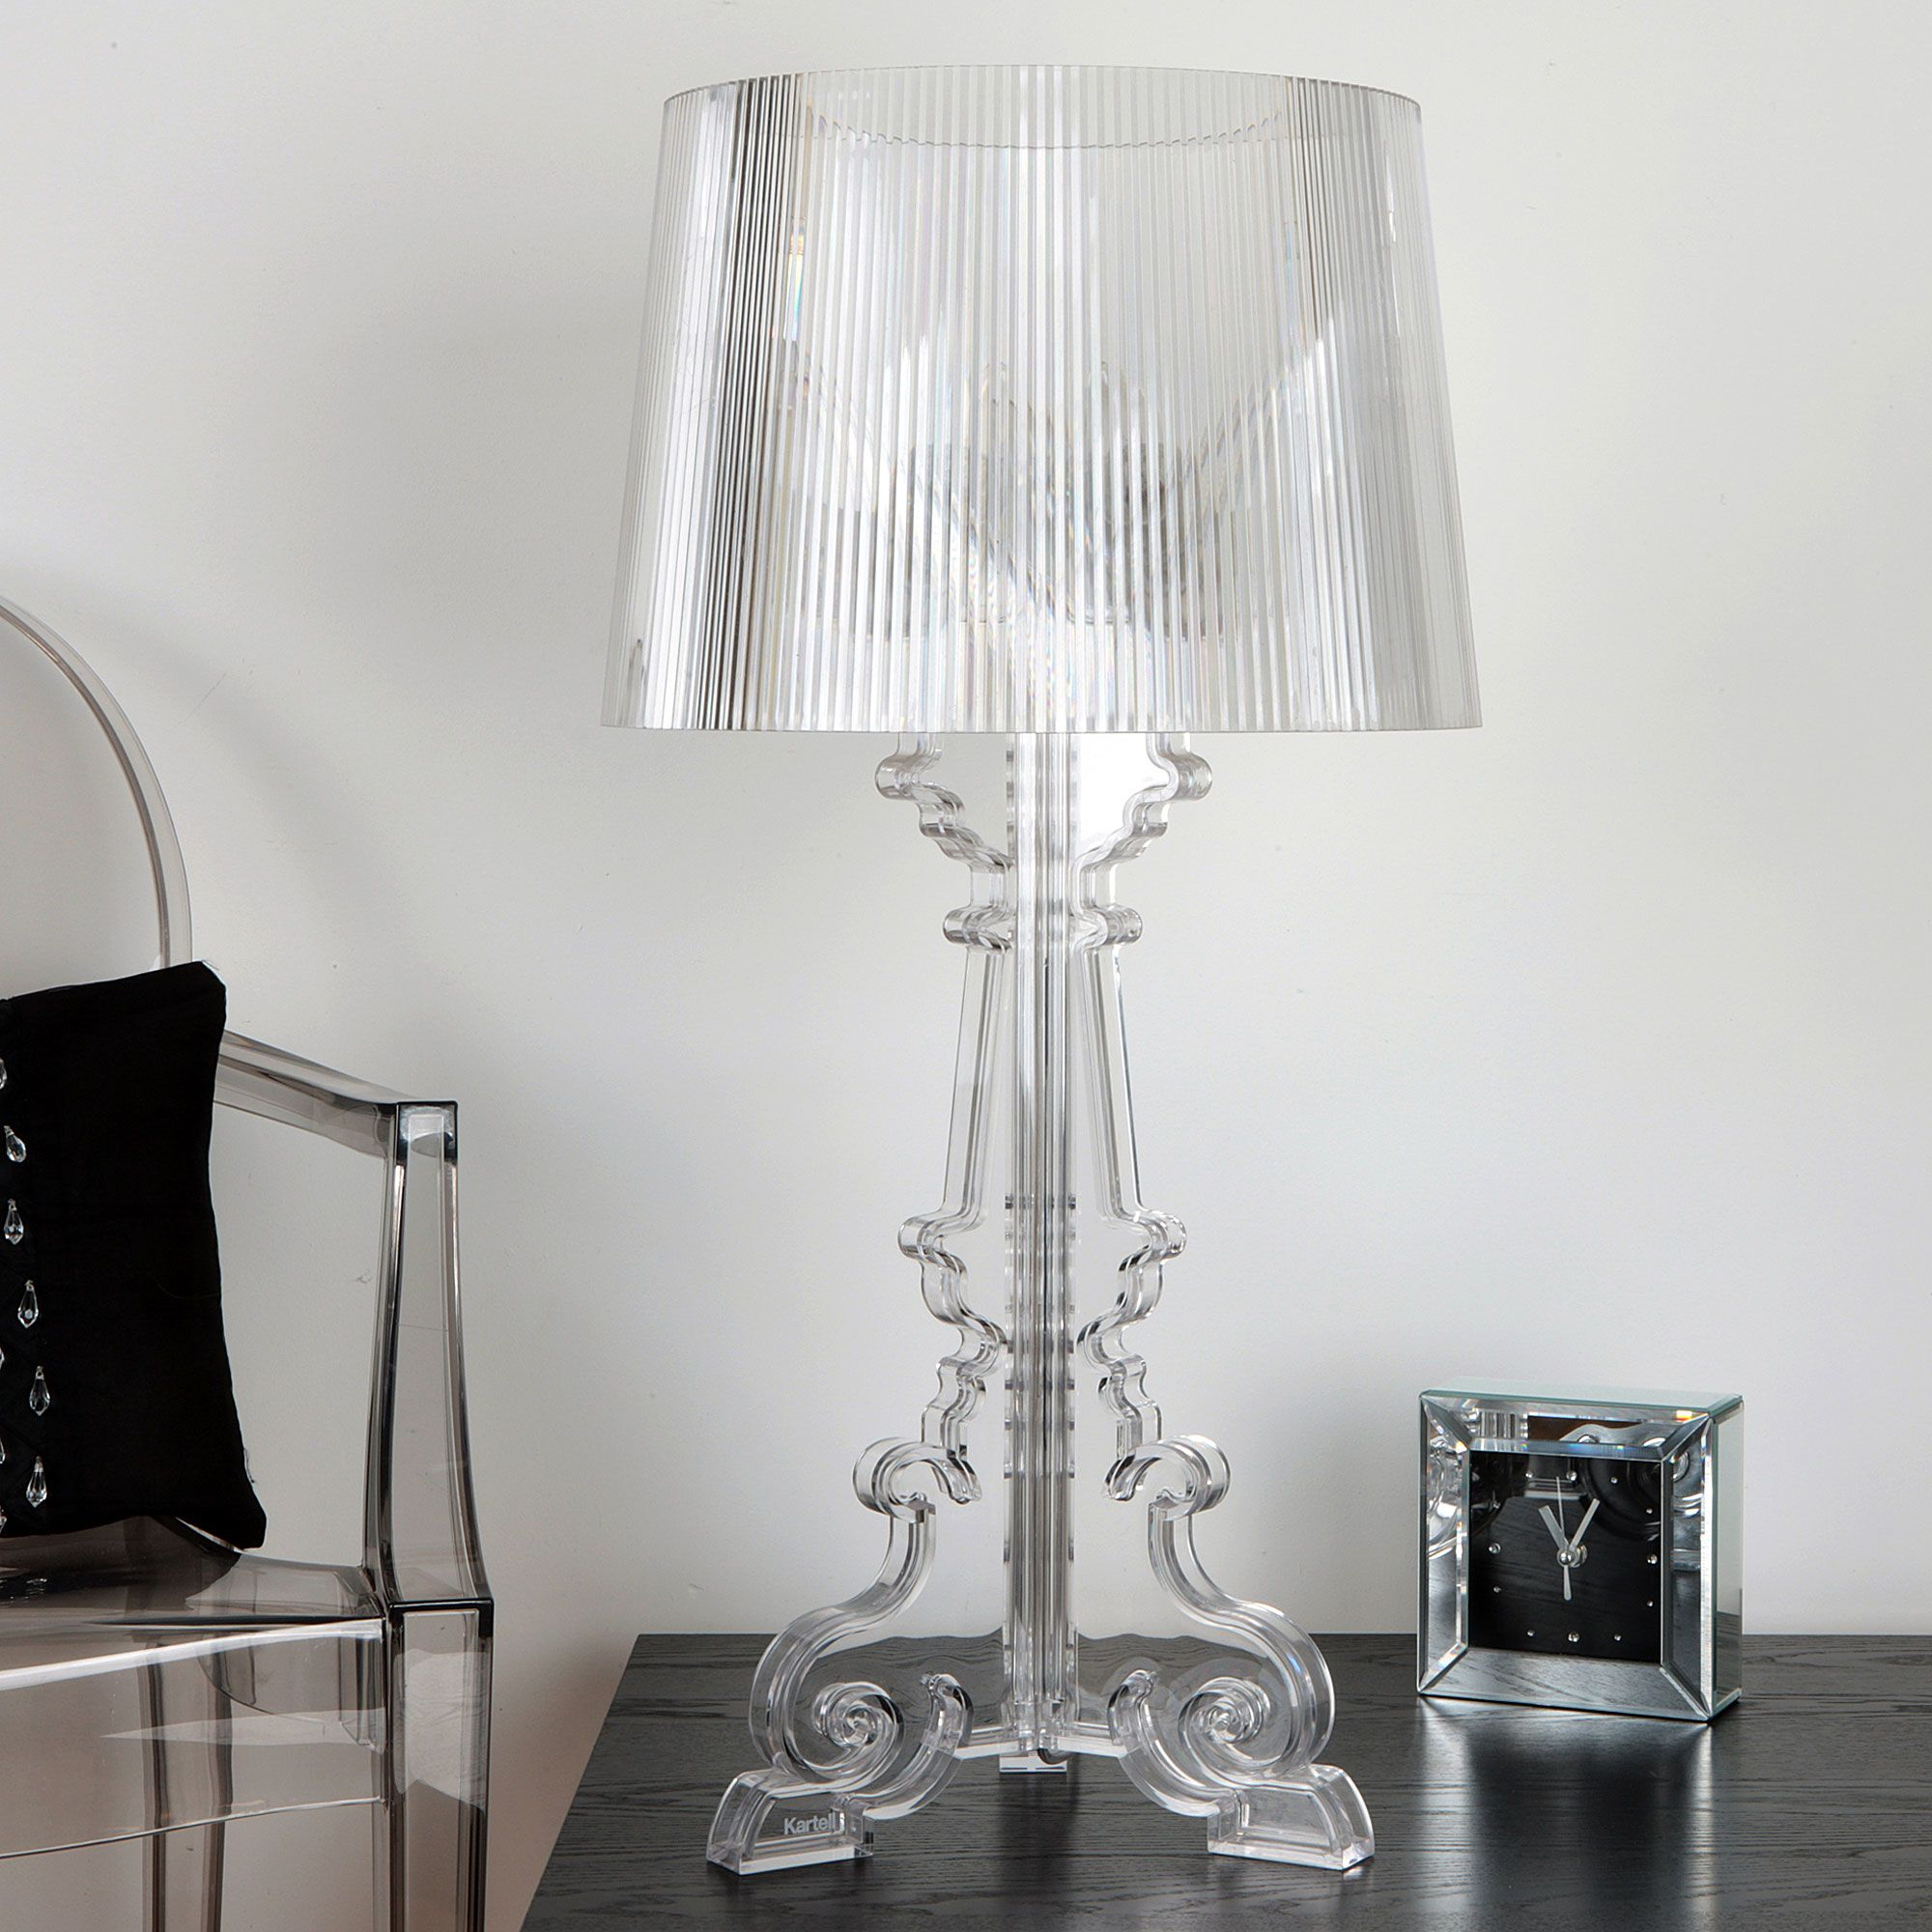 bourgie table lamp kartell by ferruccio laviani 2004. Black Bedroom Furniture Sets. Home Design Ideas